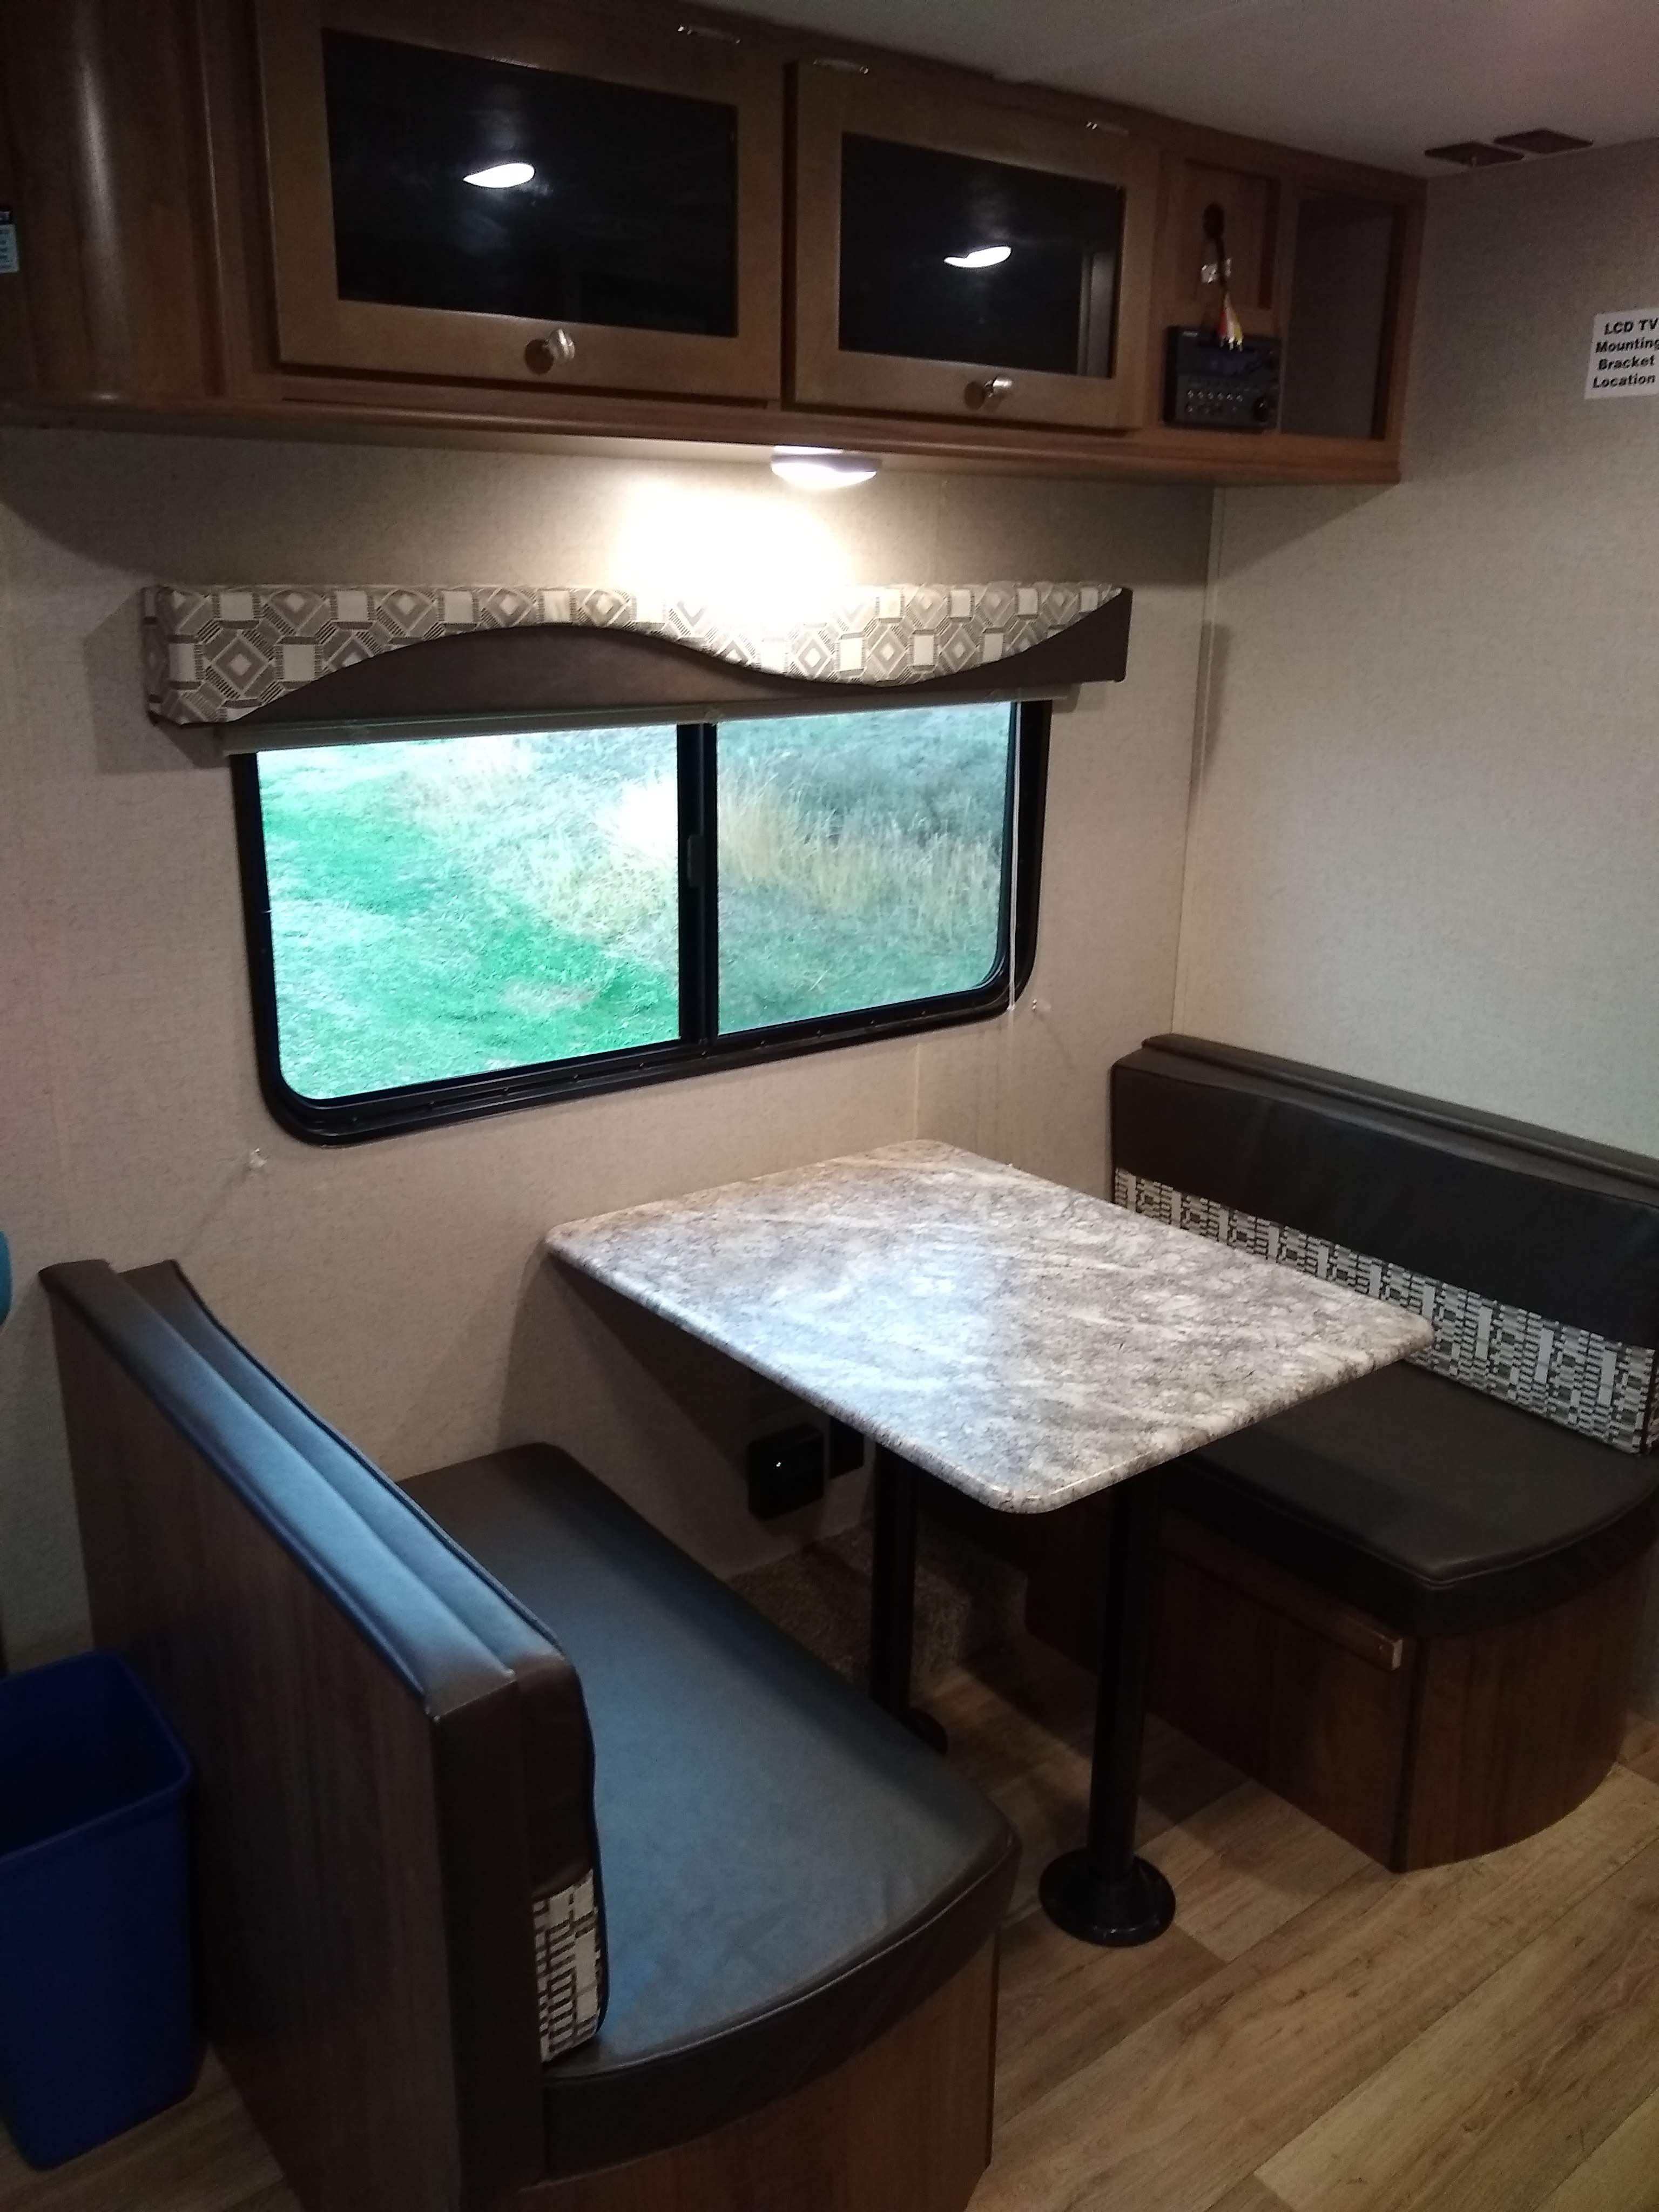 Dining table drops for an extra bed. Dutchmen Aspen Trail 2019